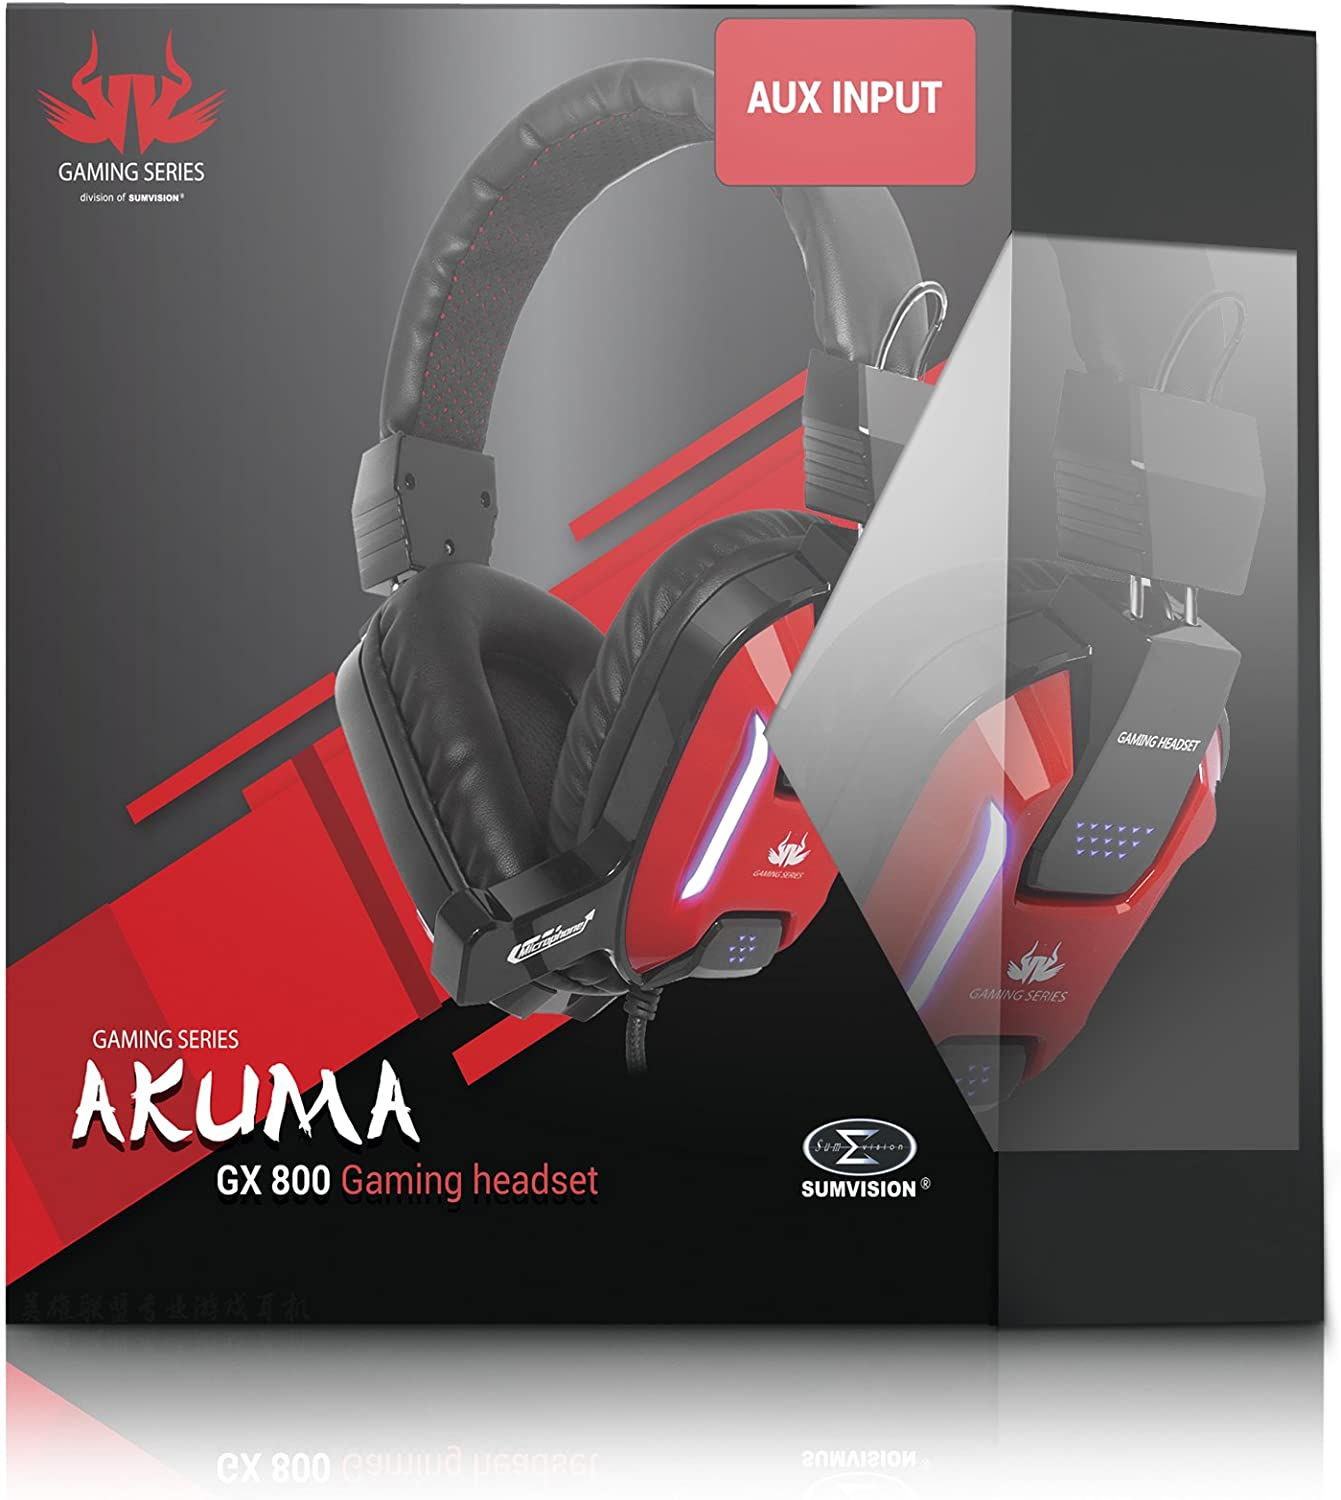 Sumvision® PC Gaming Headset Headphones Akuma GX 800 Wired USB LED Gaming Headset Headphones with Built In Microphone for Windows PC and Laptop